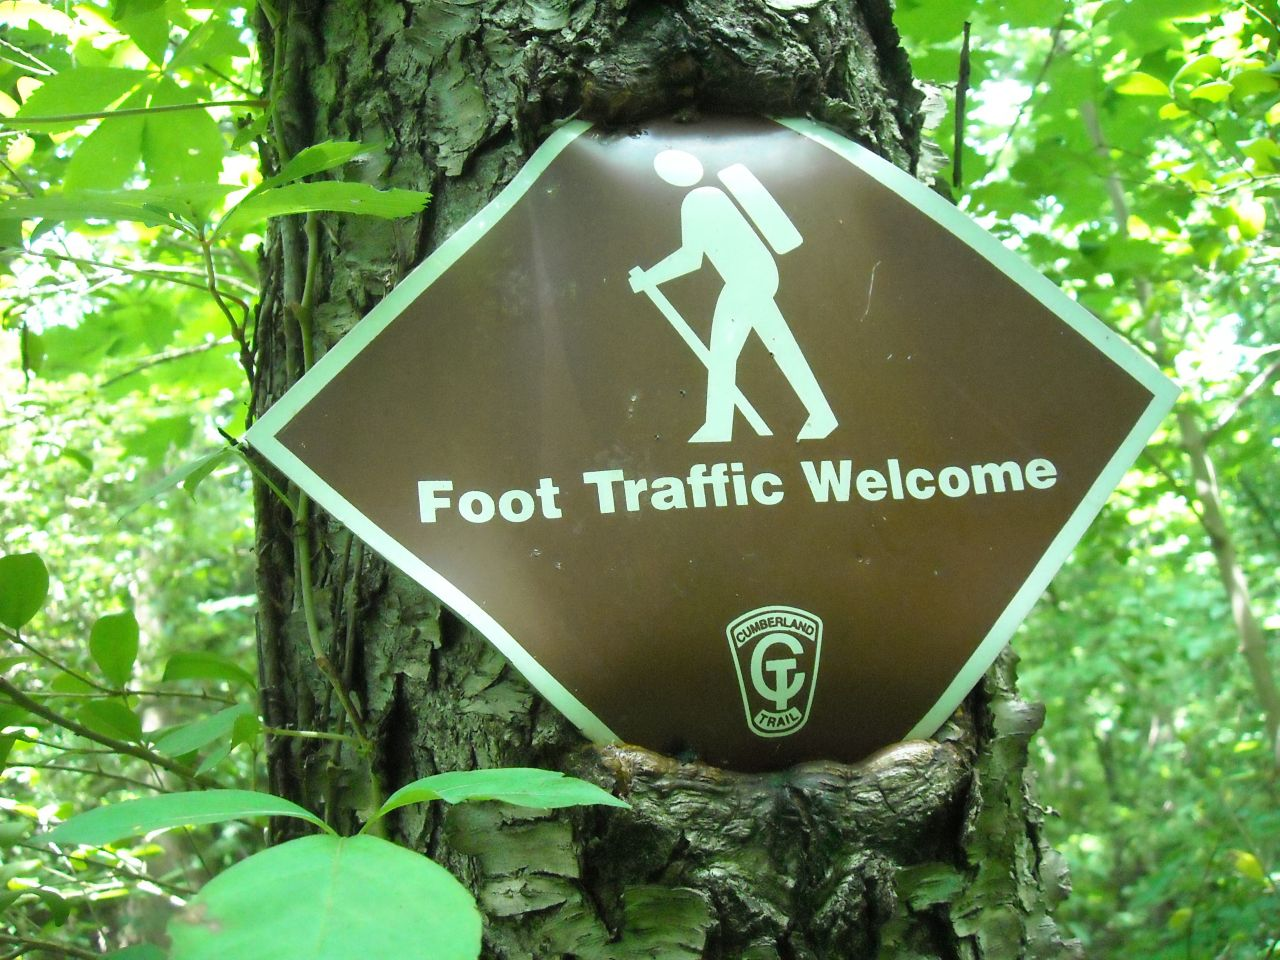 Dr Foot Traffic Sign